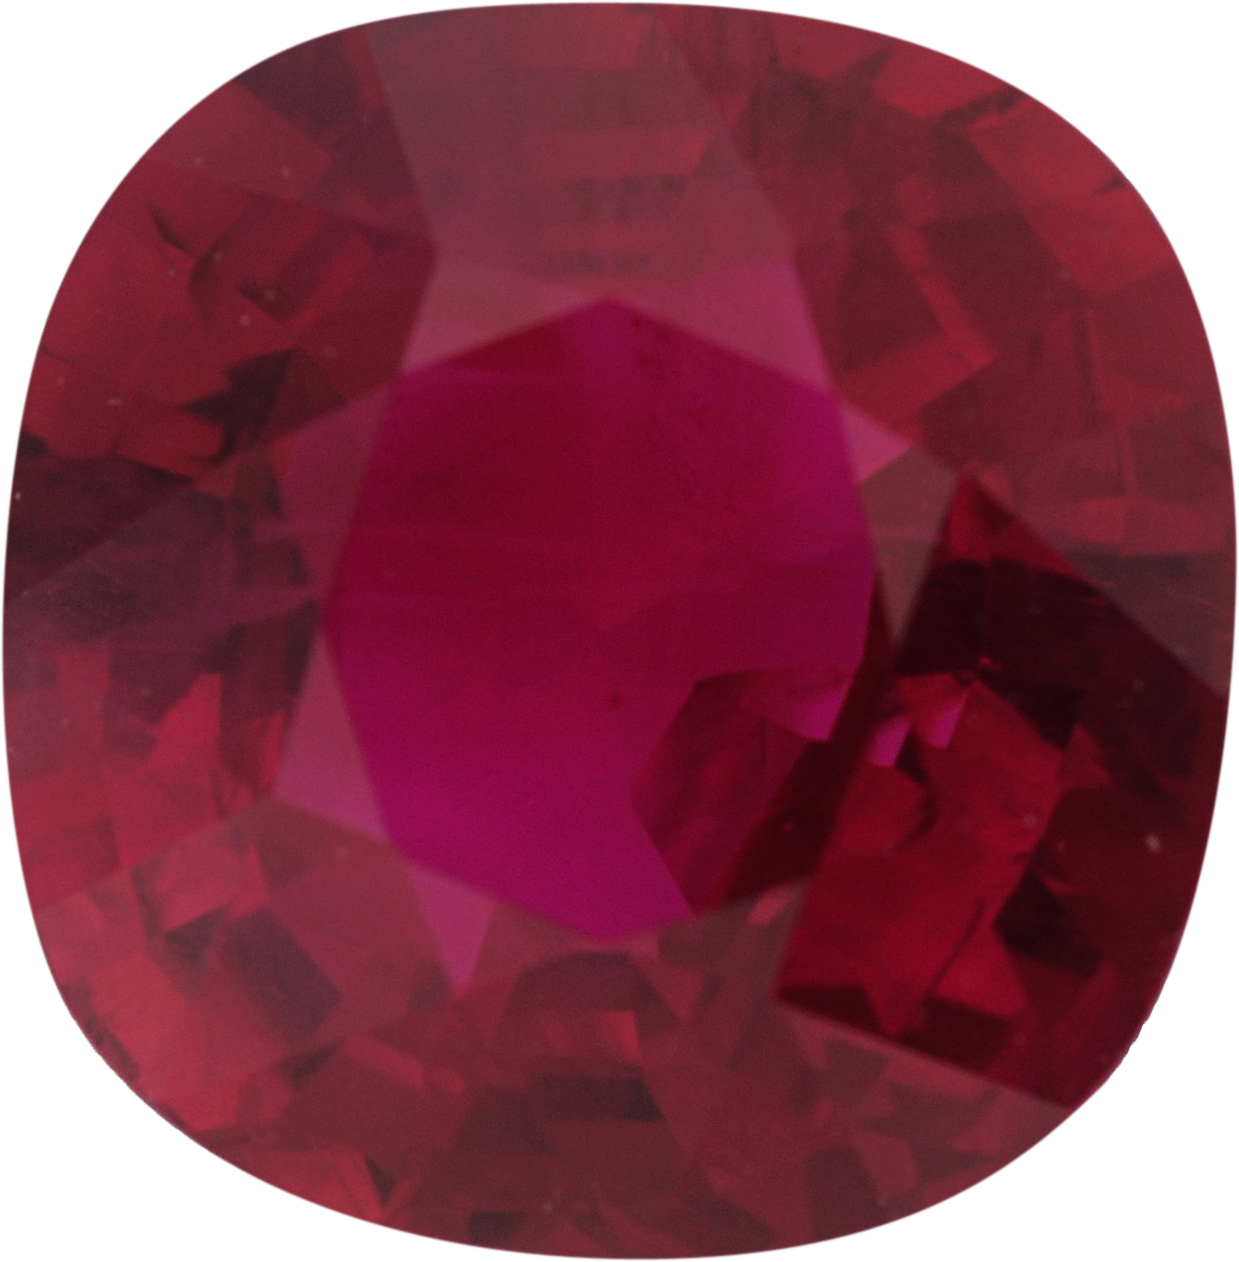 1.1 carats Antique Square Cut Genuine Ruby Gem, Brownish Red, 6.2 x 6.1 mm